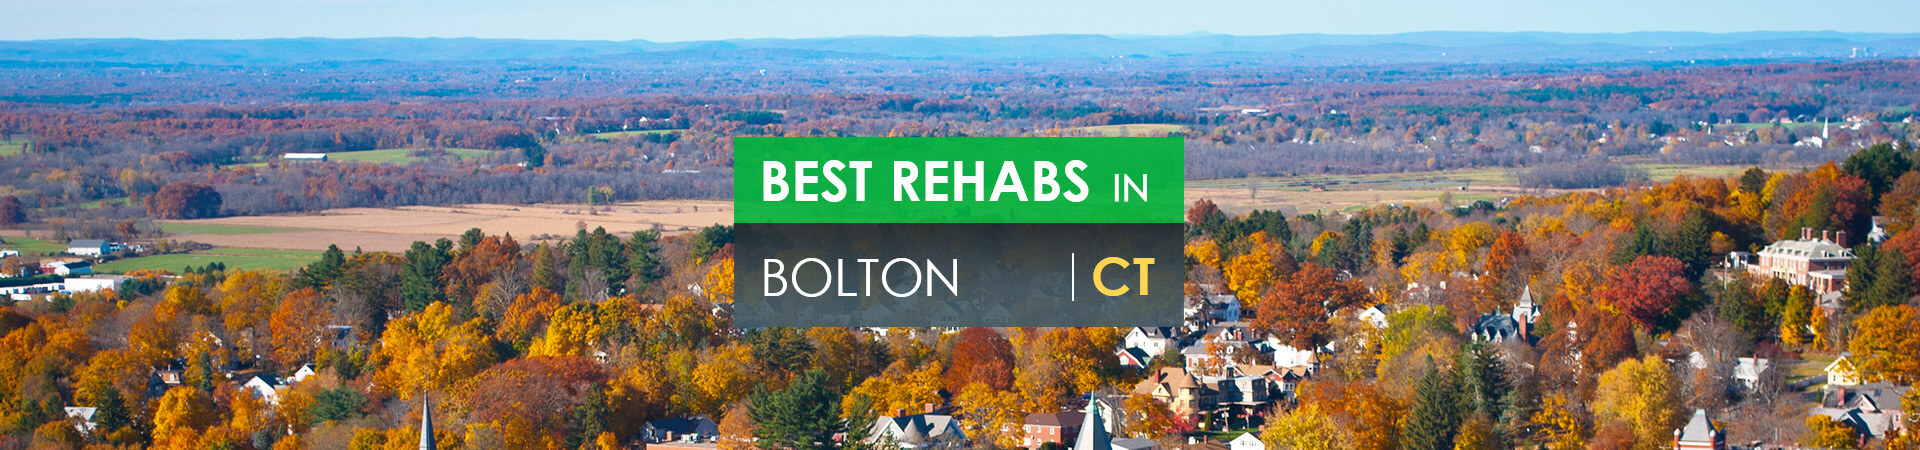 Best rehabs in Bolton, CT